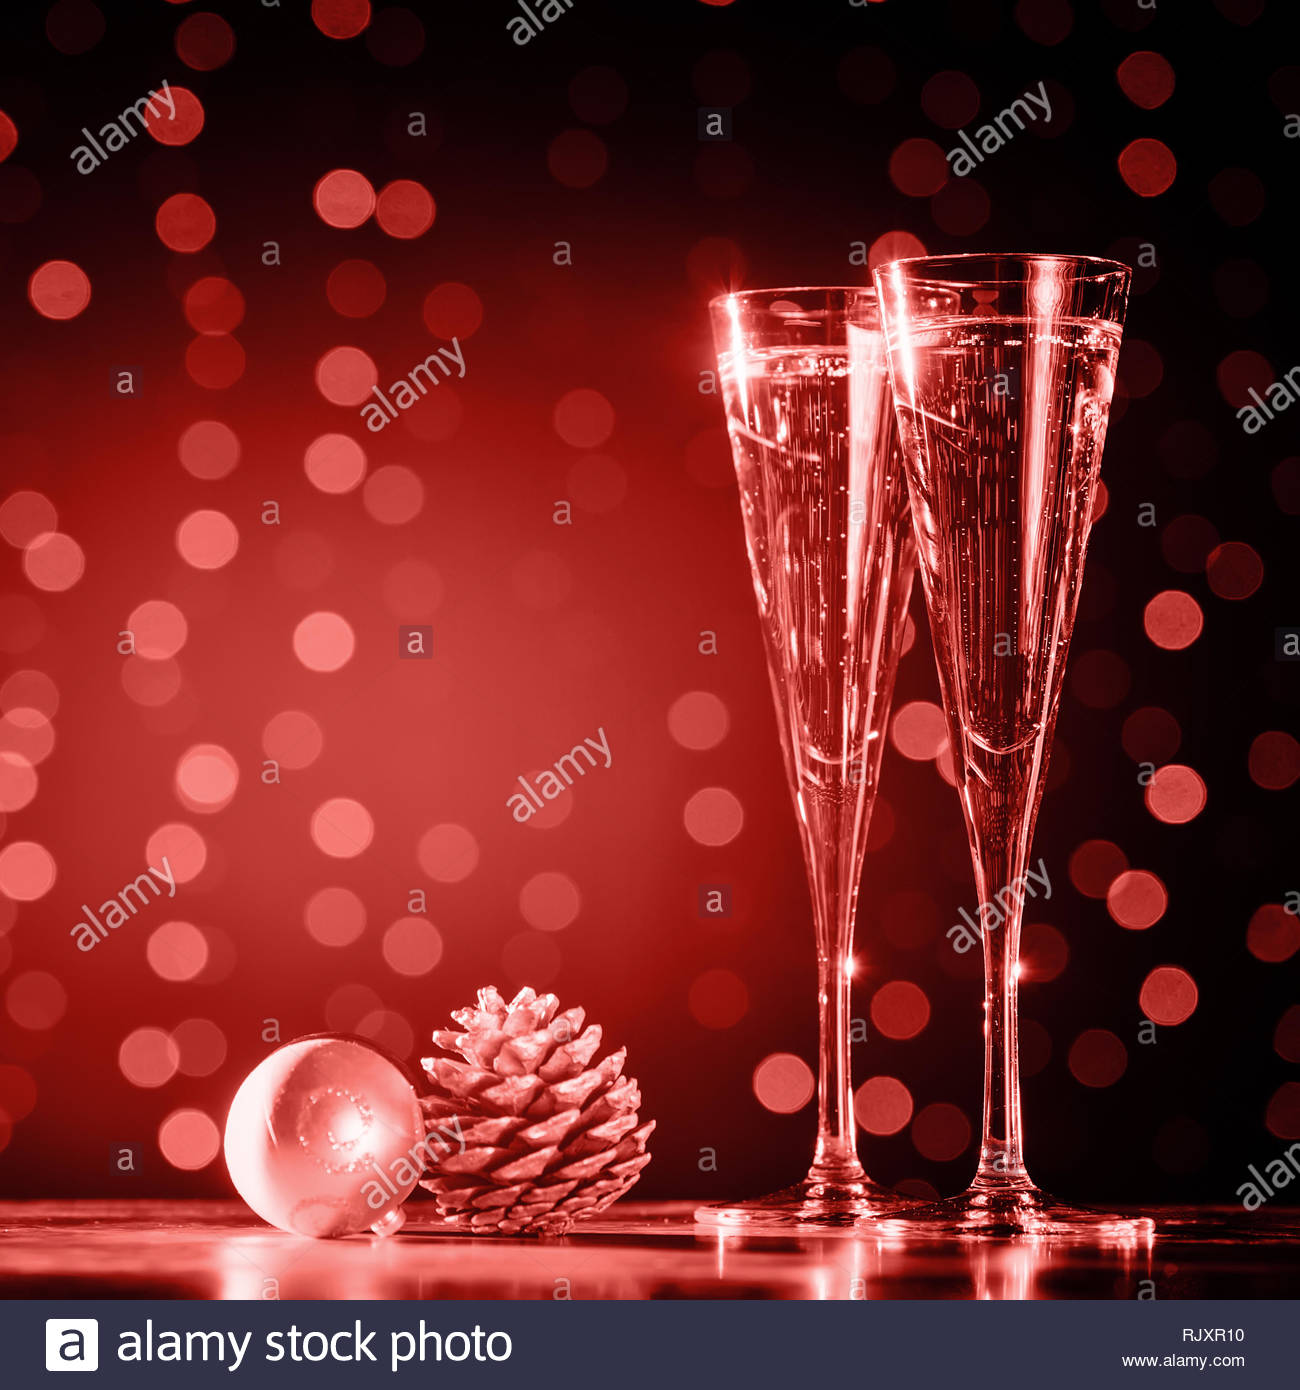 Two glasses of champagne with Christmas toys. Festive lights bokeh Christmas background. New Year holidays celebration. Square, warm tone. Living cora - Stock Image